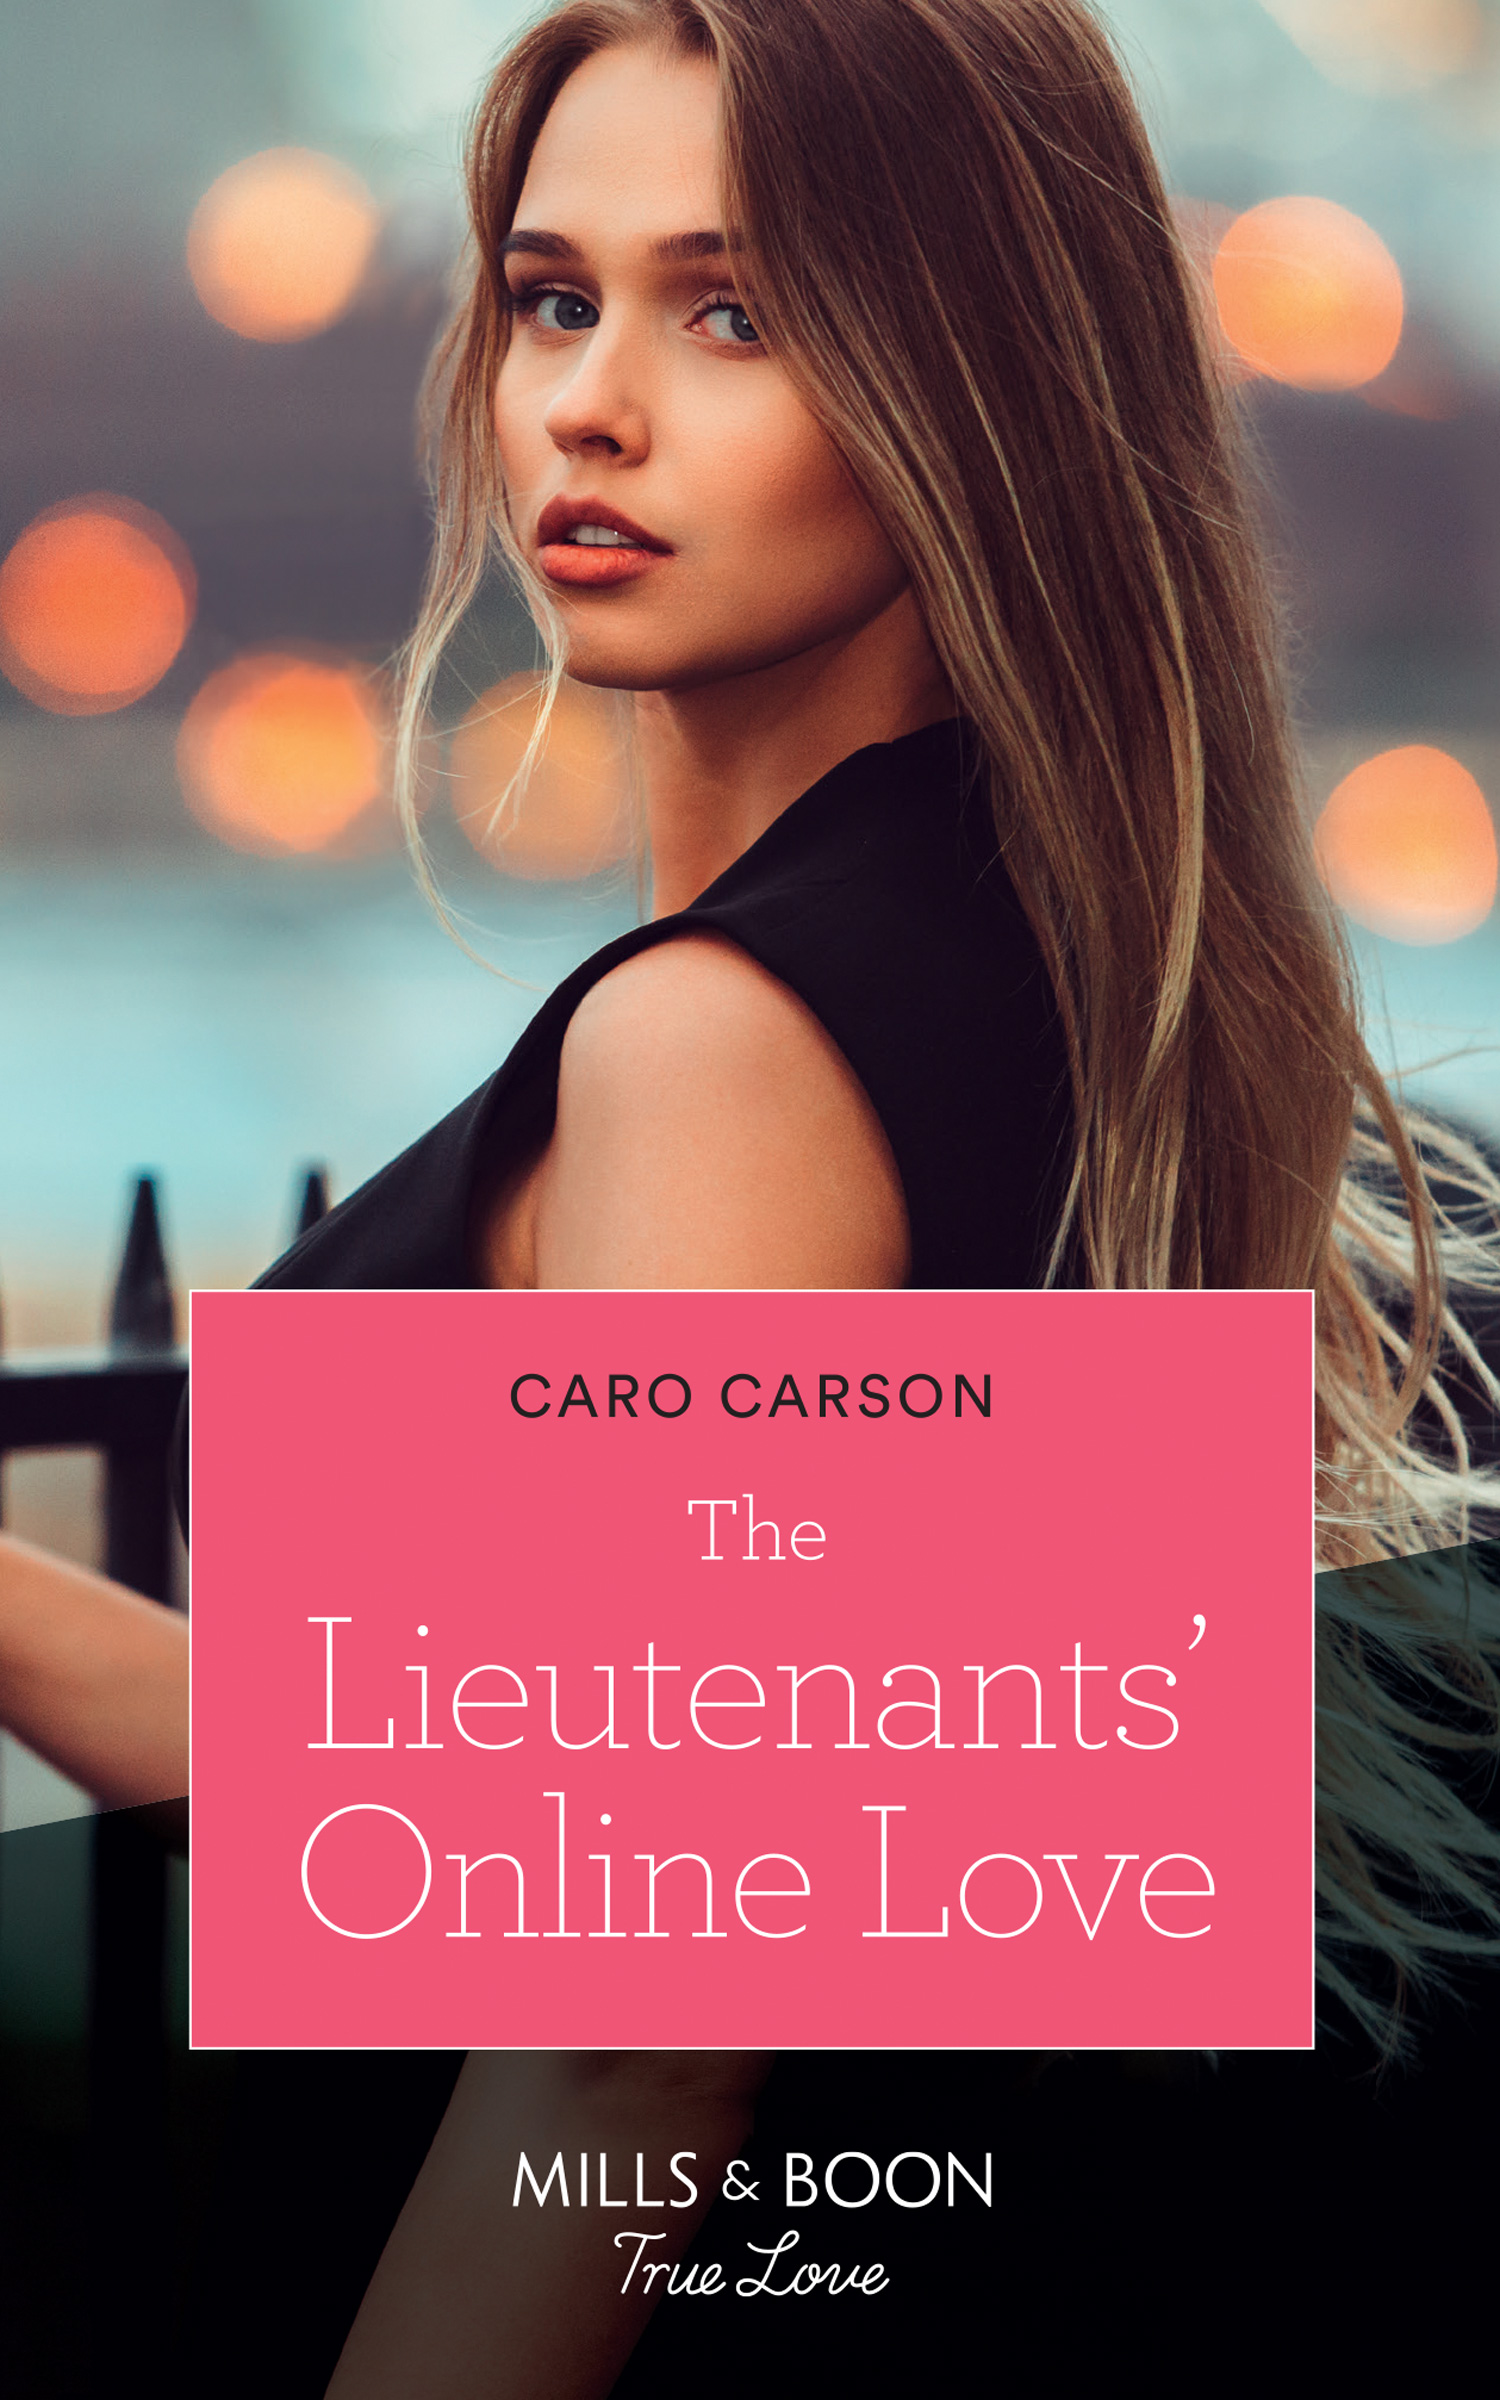 The Lieutenants' Online Love